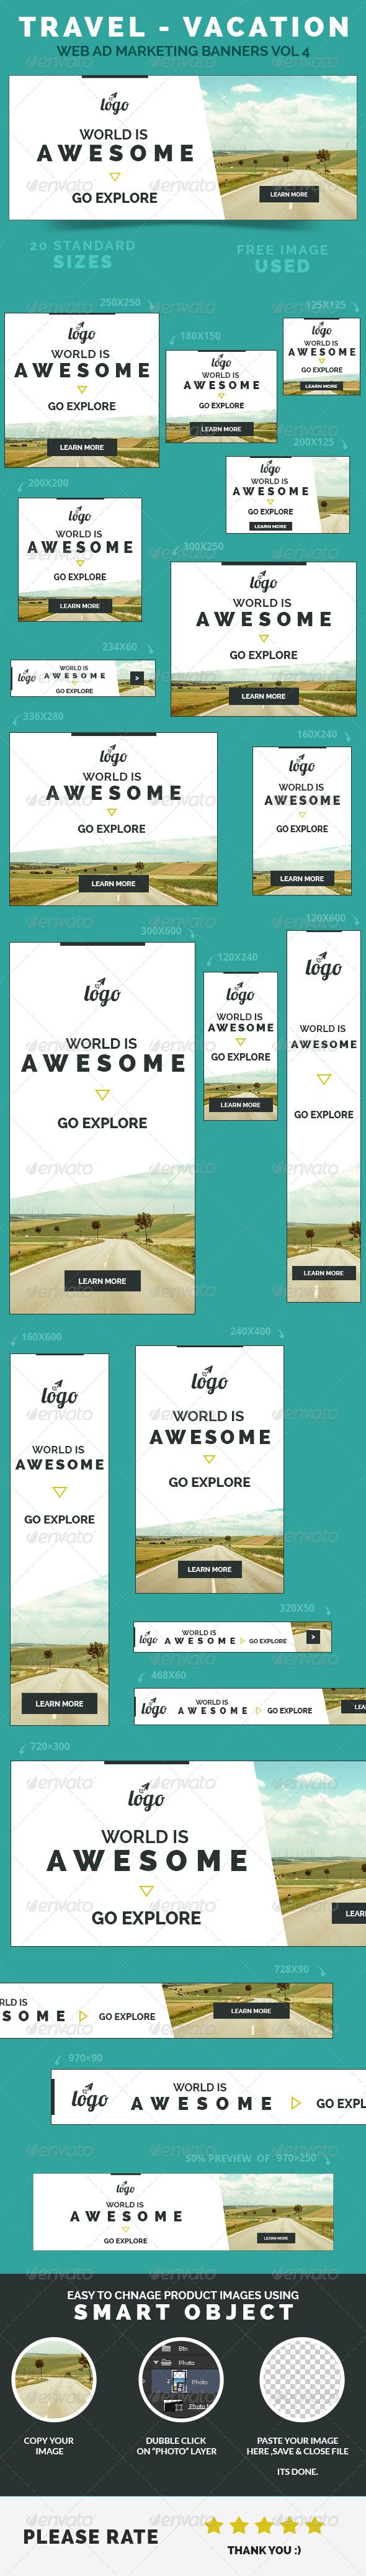 Travel - Vacation Web Ad Marketing Banners Template PSD | Buy and Download: http://graphicriver.net/item/travel-vacation-web-ad-marketing-banners-vol-4/8500668?WT.ac=category_thumb&WT.z_author=webduck&ref=ksioks